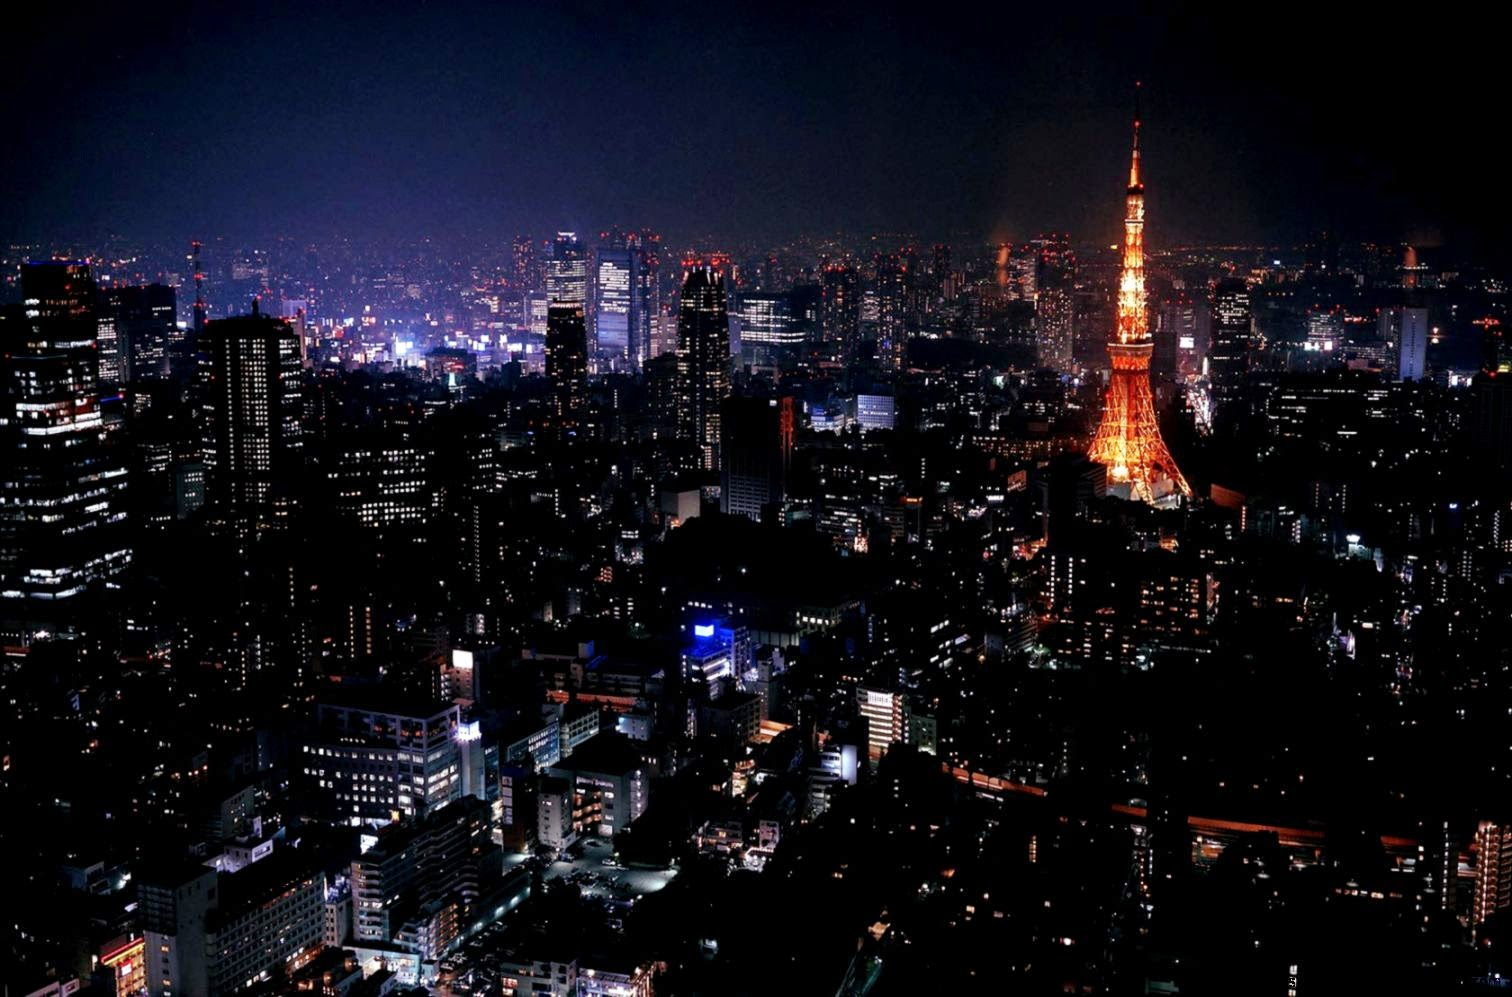 Cityscape Wallpaper Image Picture | Best HD Wallpapers